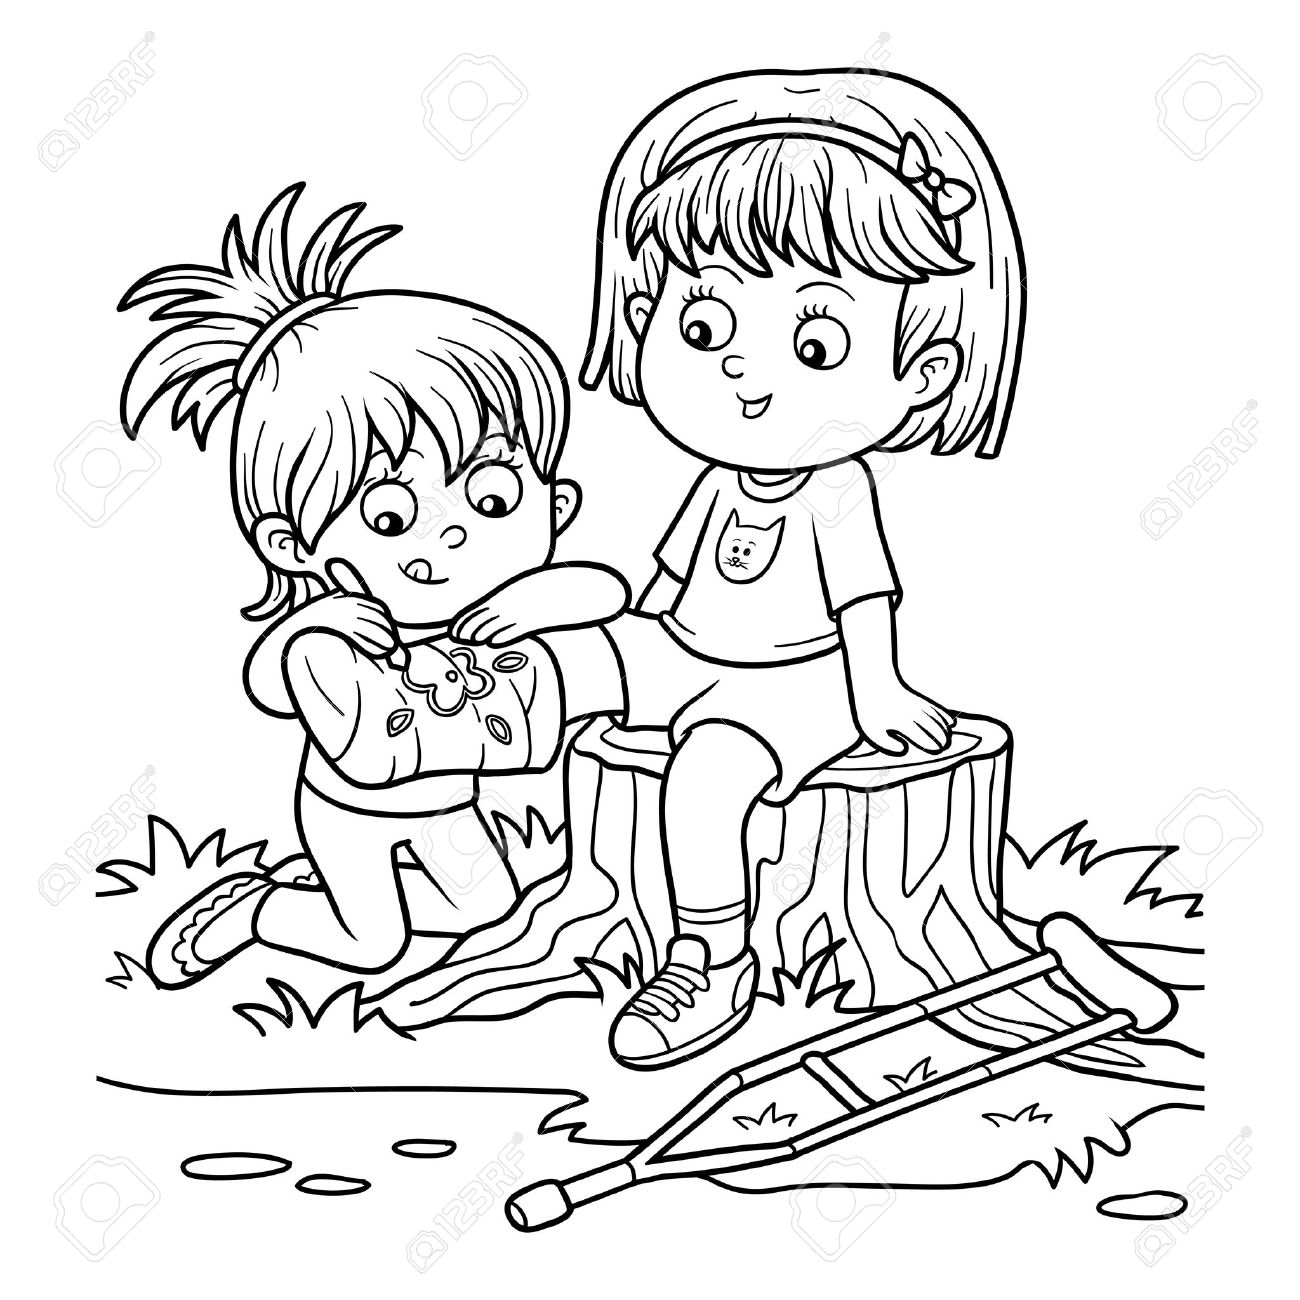 Coloring Book For Children (Two Girls On The Glade, Girl Draws ...